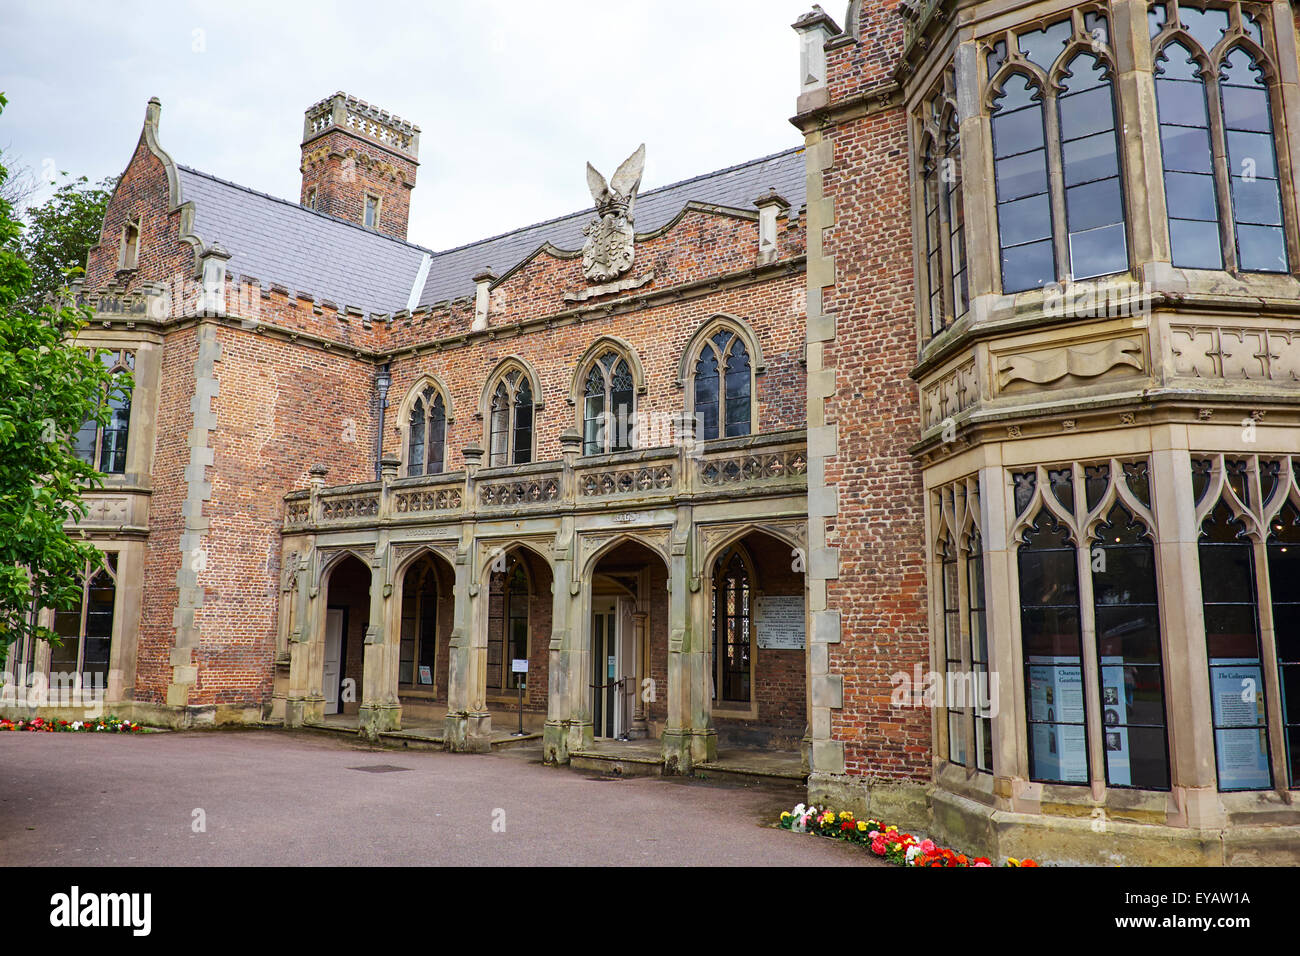 Ayscoughfee Hall Museum And Gardens, Churchgate Spalding ...